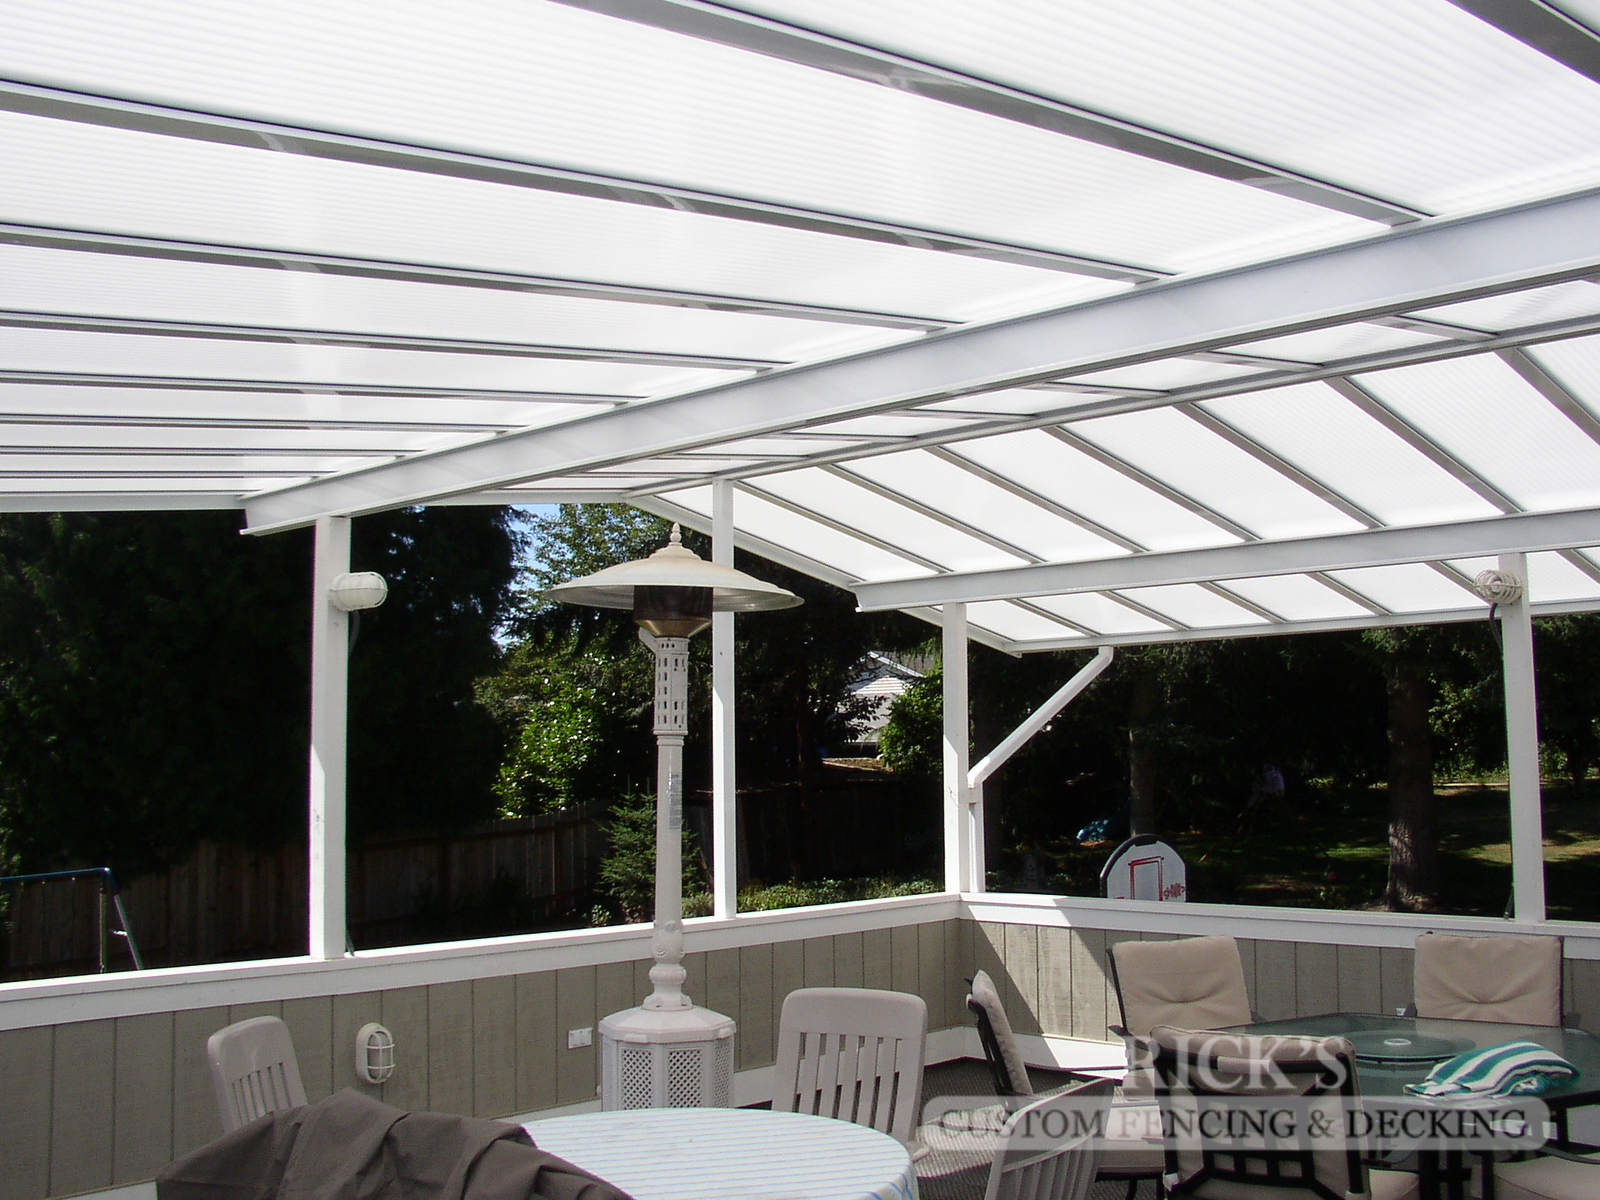 5050 - Acrylite Patio Cover